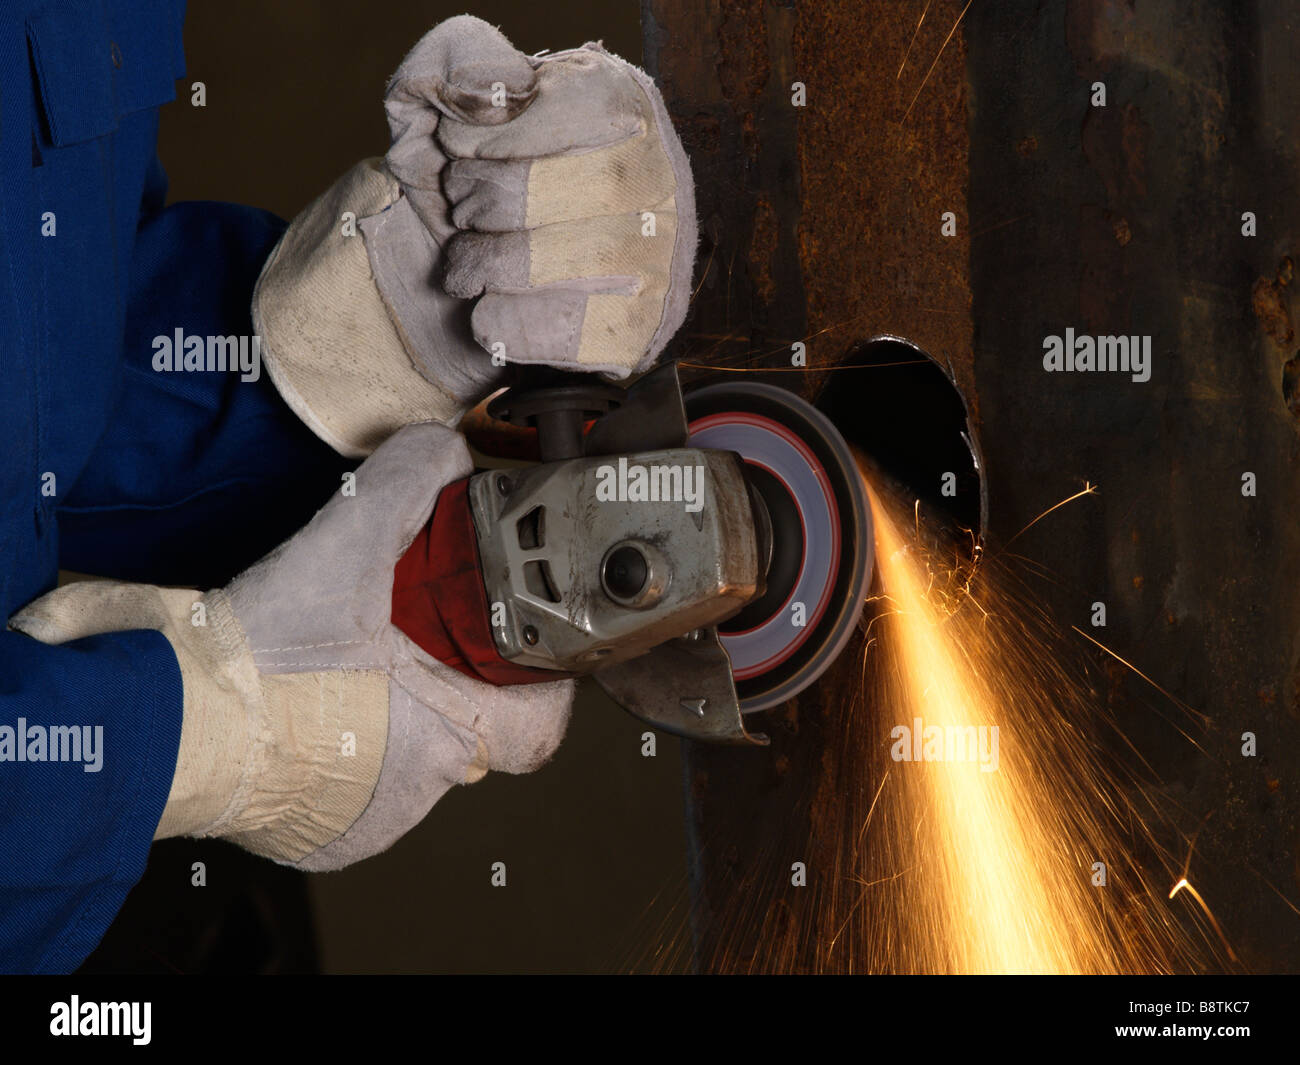 Hands with protective gloves using angle grinder on iron sparks heat friction - Stock Image